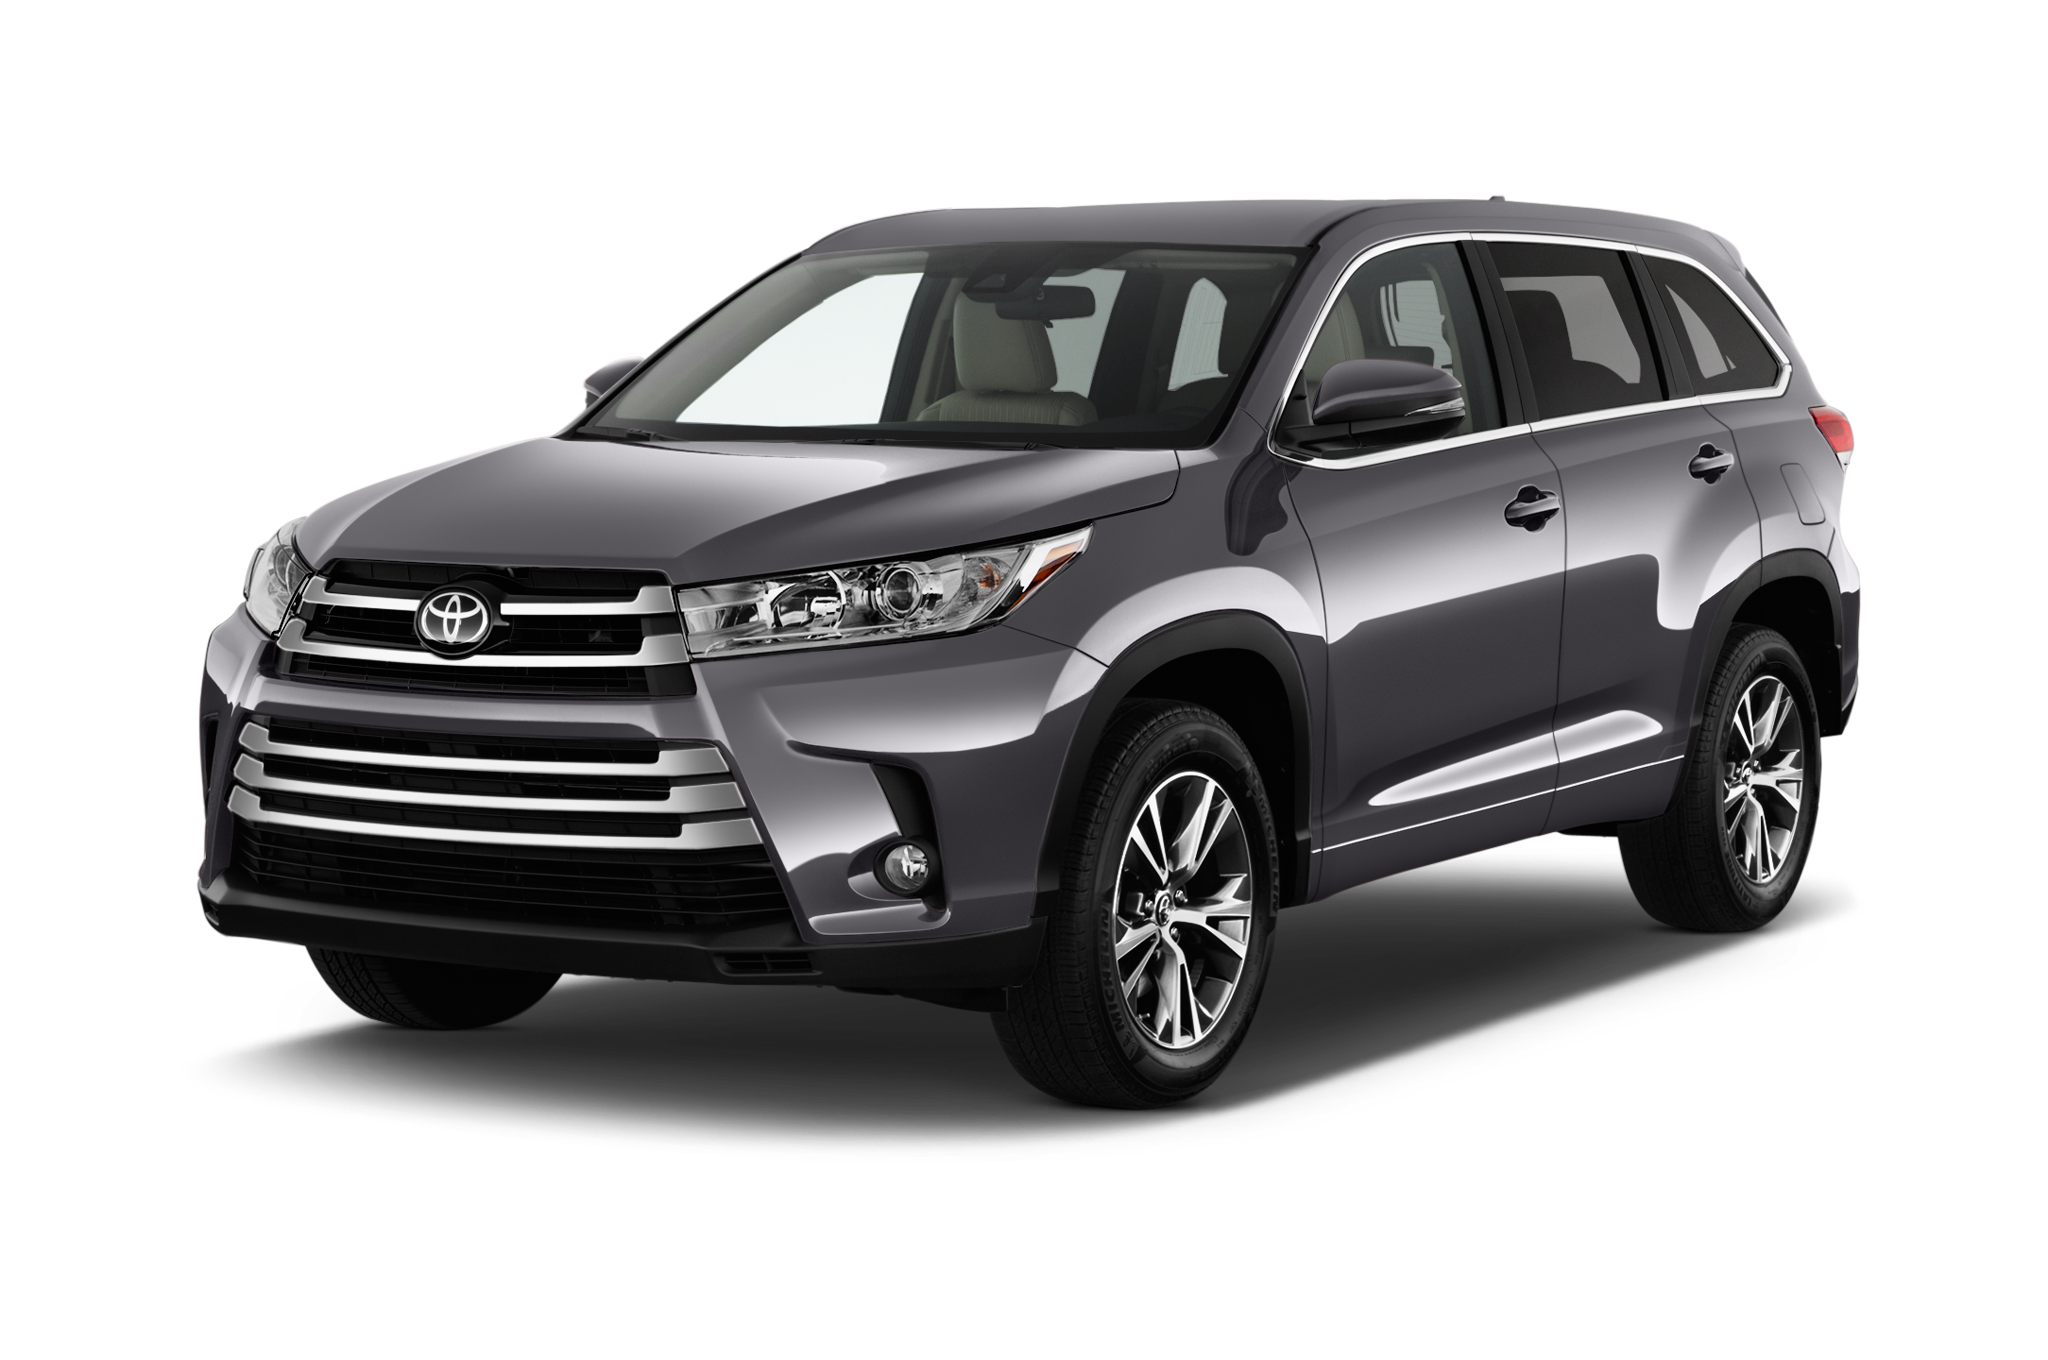 2019 toyota highlander interior photos msn autos. Black Bedroom Furniture Sets. Home Design Ideas